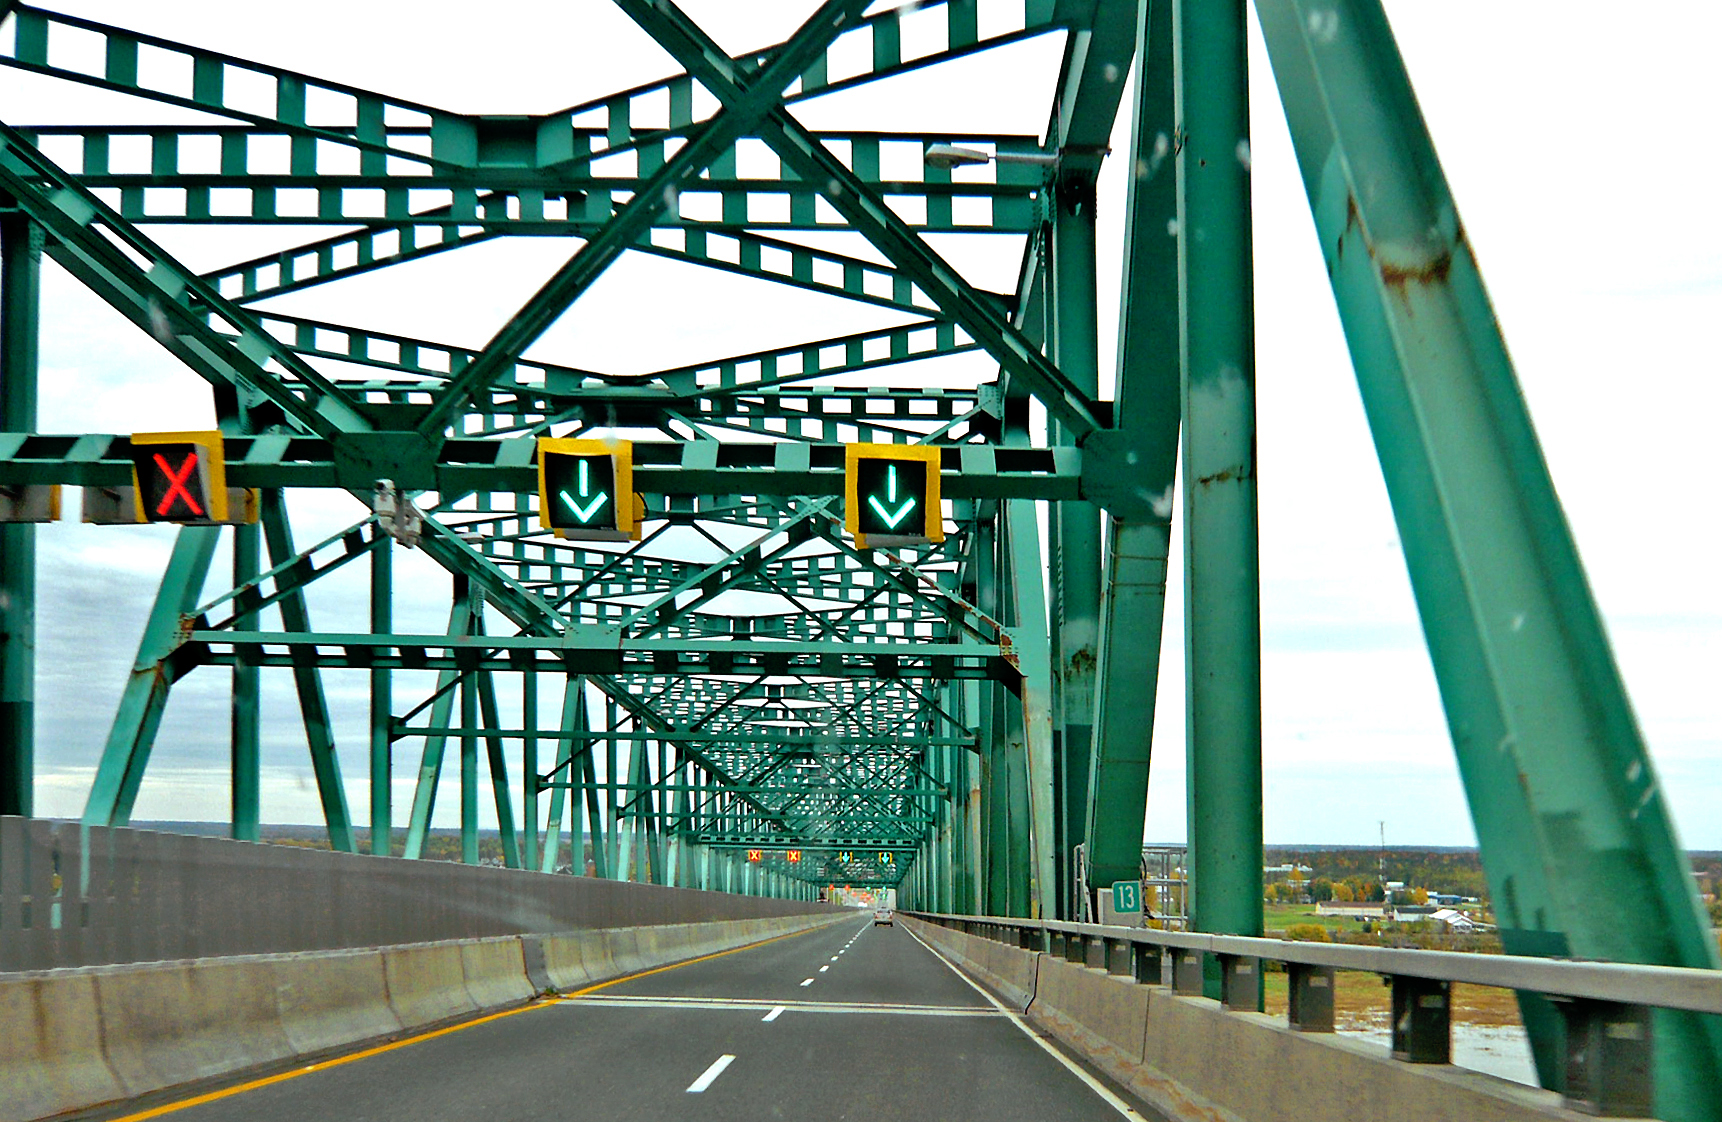 Laviolette Bridge